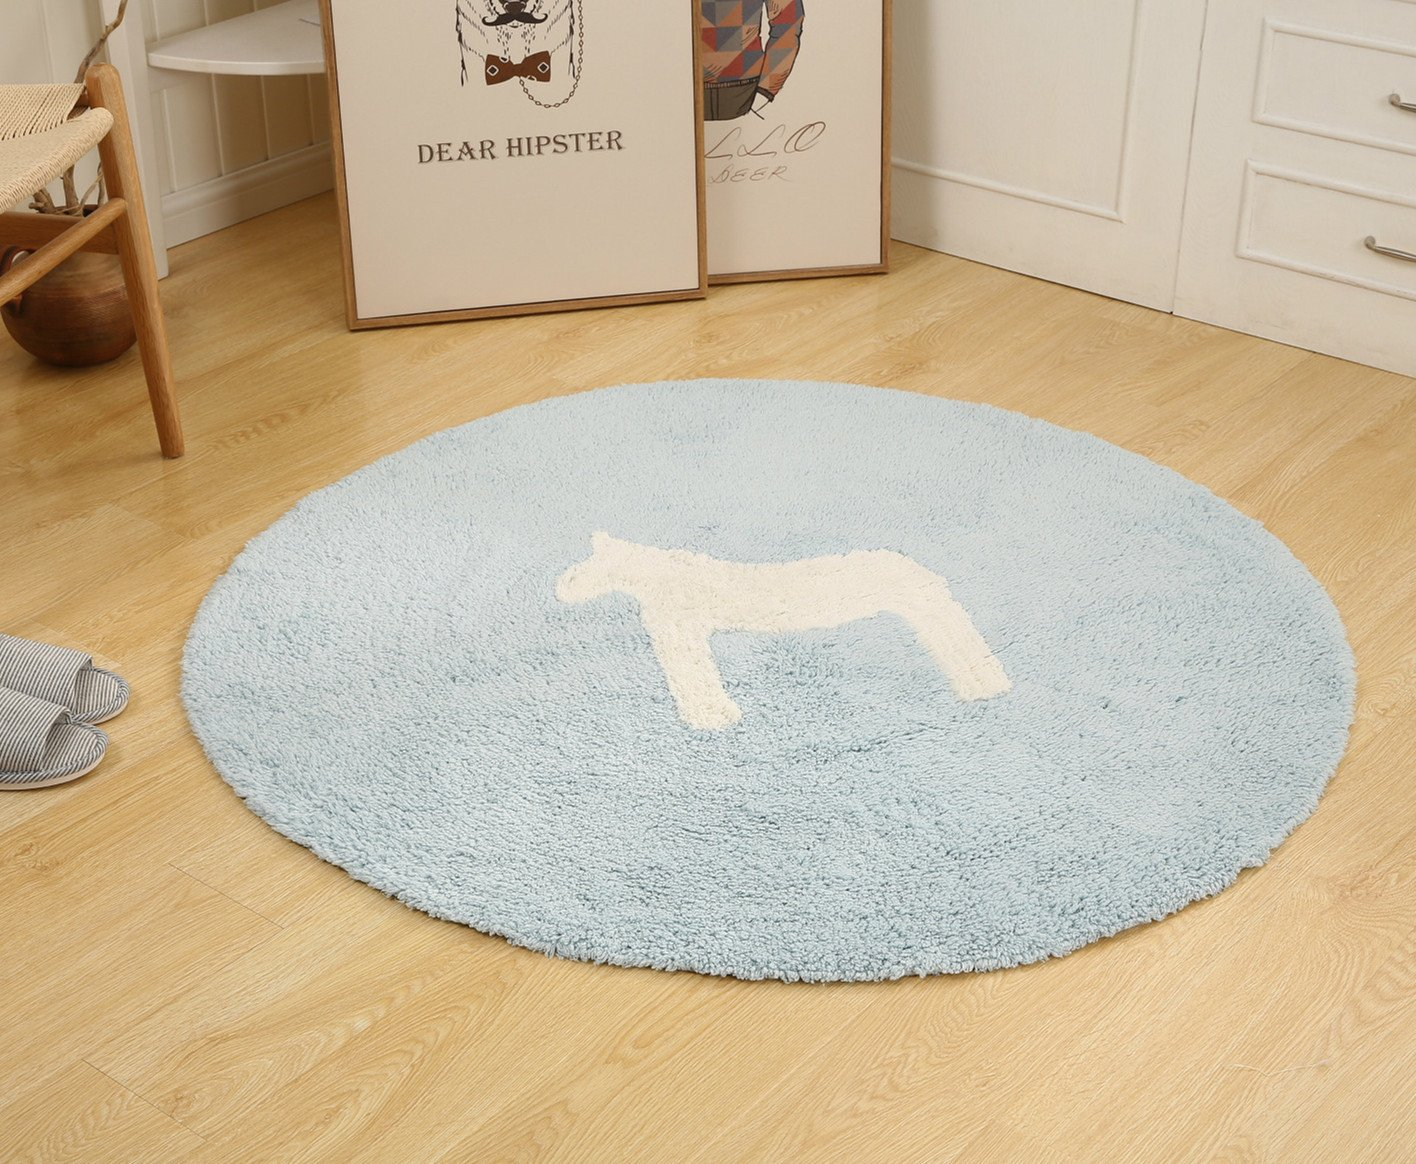 Round Baby Play Game Mat Crawling Mat, Children's Lovely animals Round Rug, Warm Soft Cotton Luxury Plush Baby Crawling Rugs 47.24 inch Diameter (Blue-Foal)